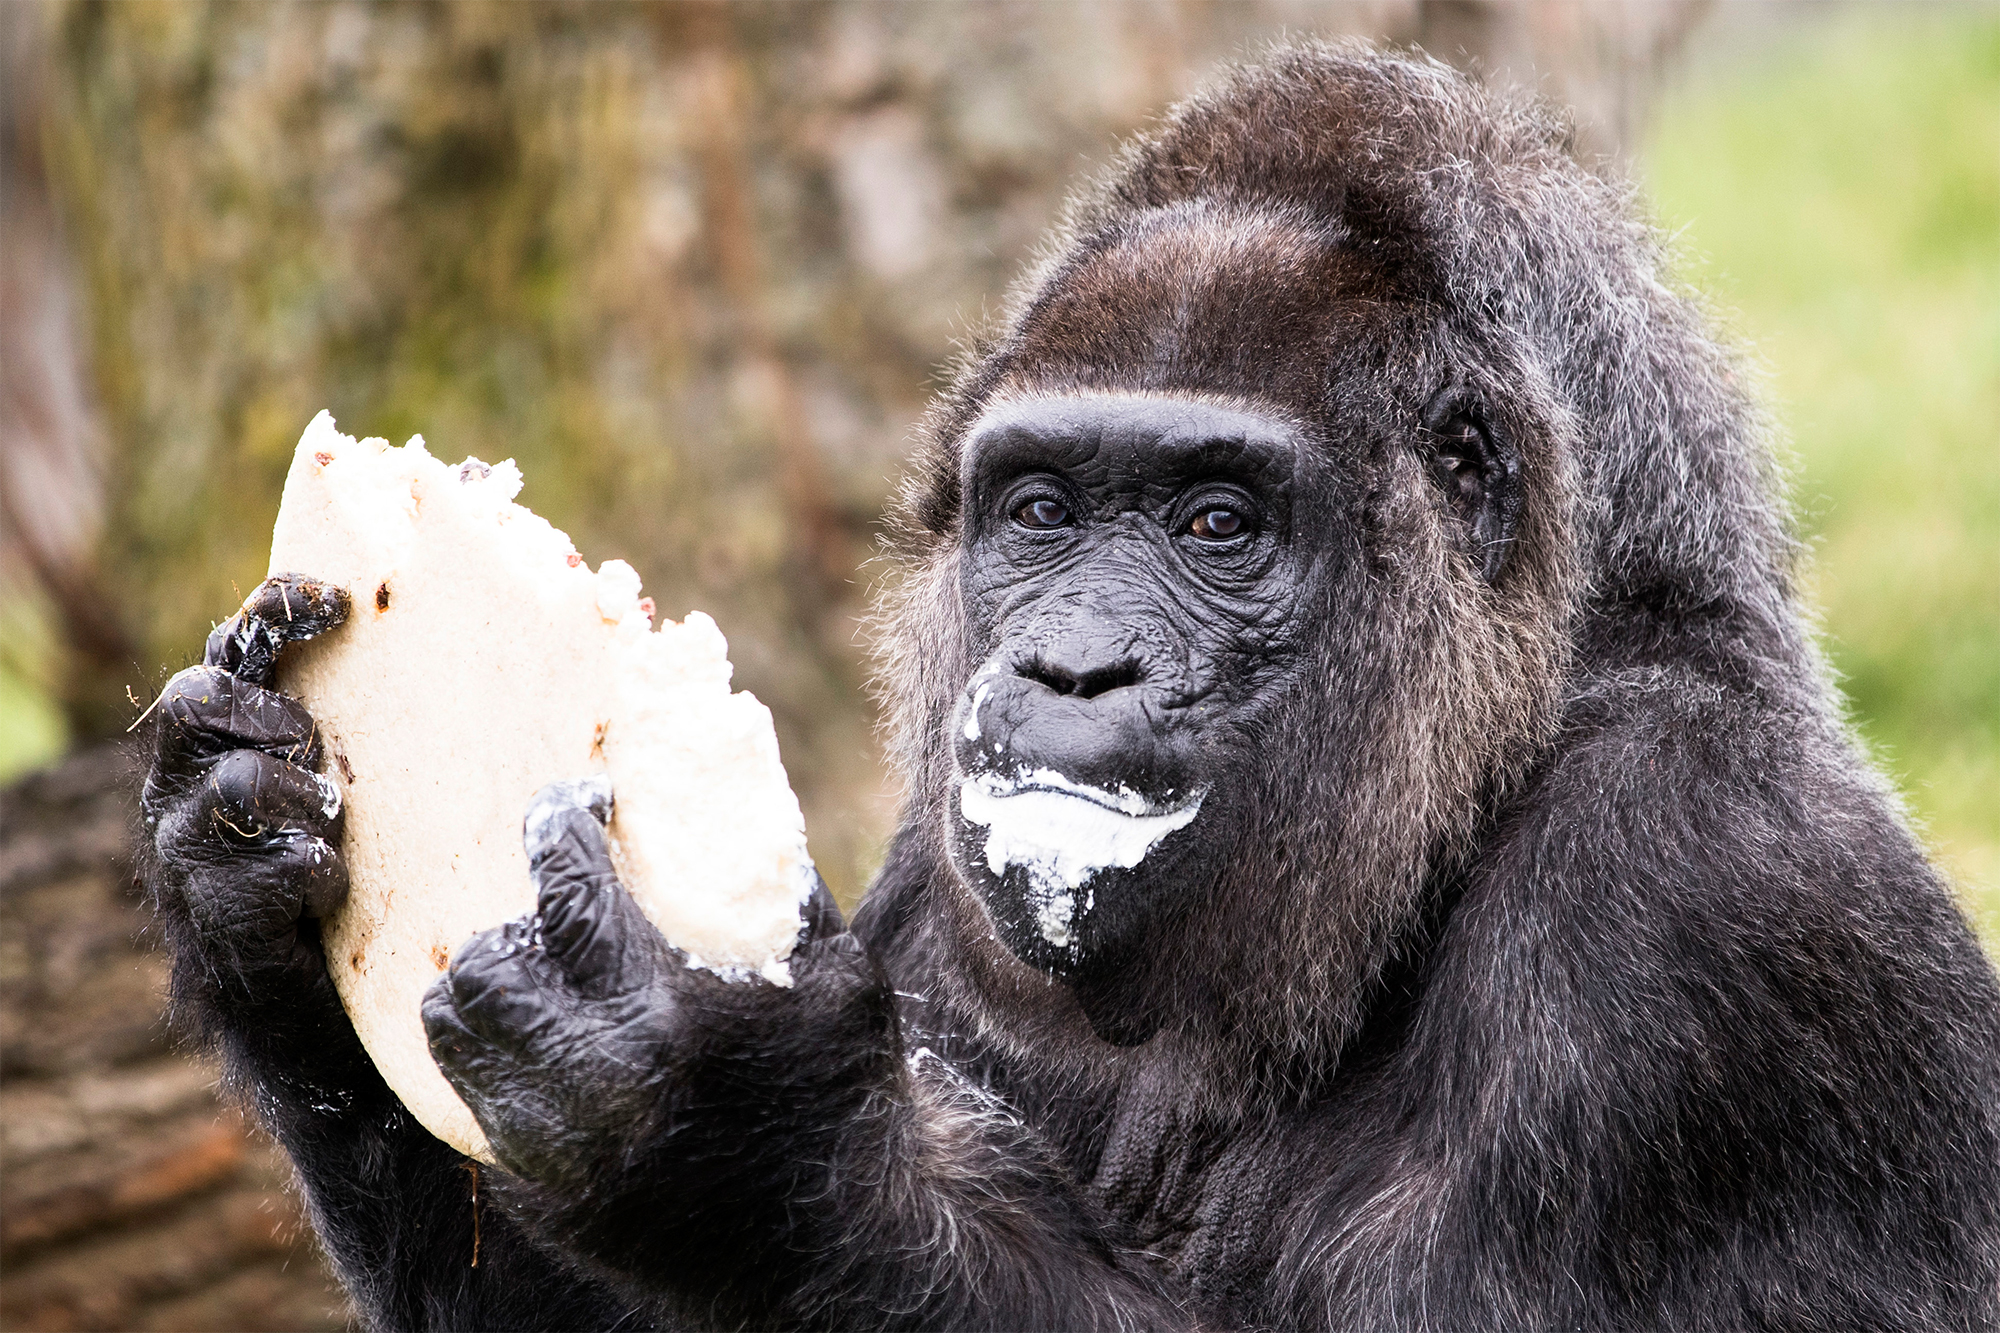 World's Oldest Gorilla At Berlin Zoo Gets Cake for 61st Birthday ...